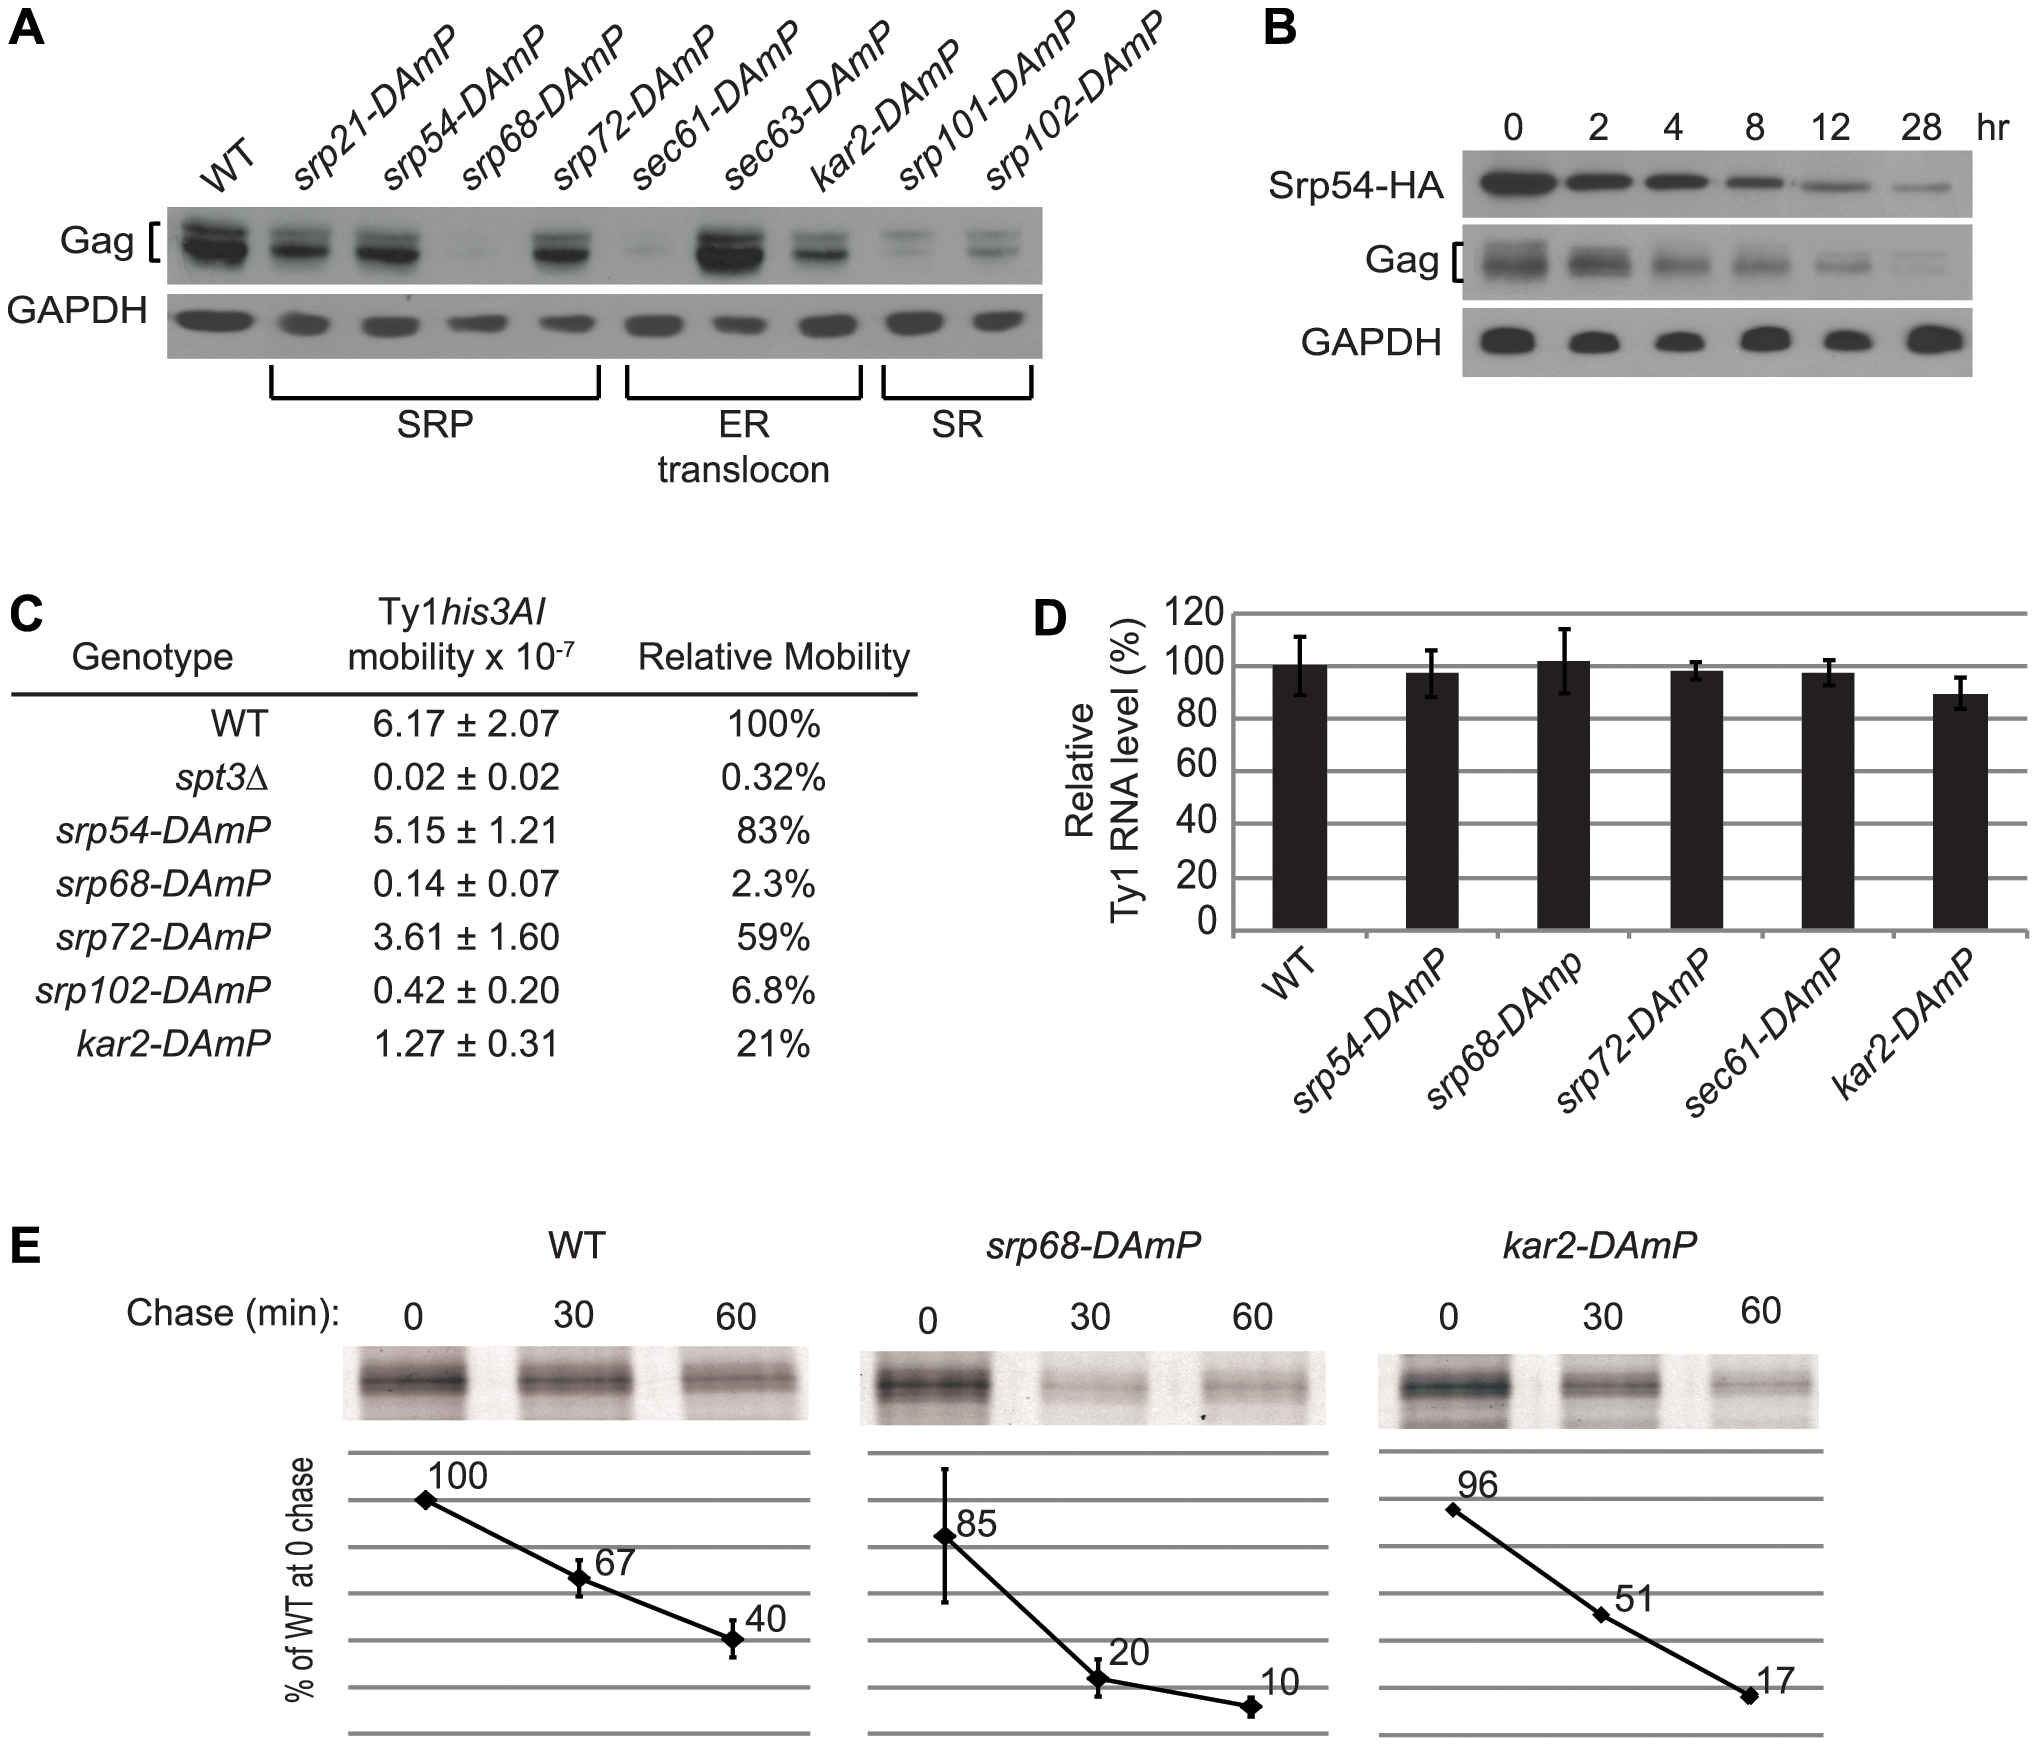 Co-translational ER translocation machinery is required for Ty1 Gag stability.